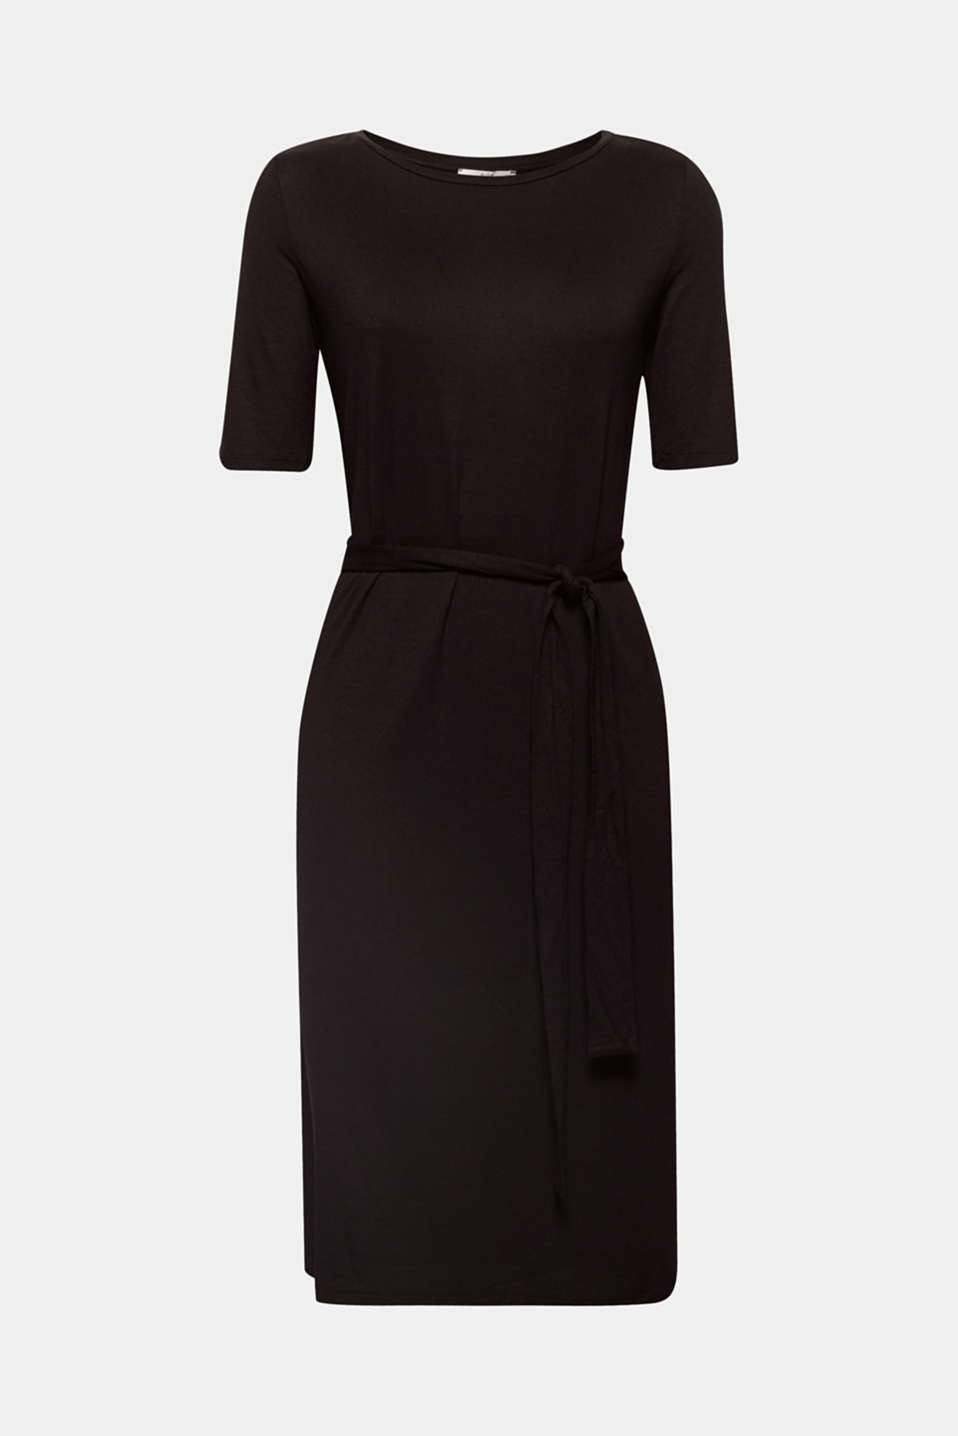 This jersey dress is both minimalist and feminine with its moderately figure-skimming midi silhouette which can be nipped in beautifully at the waist with ties attached at either side.